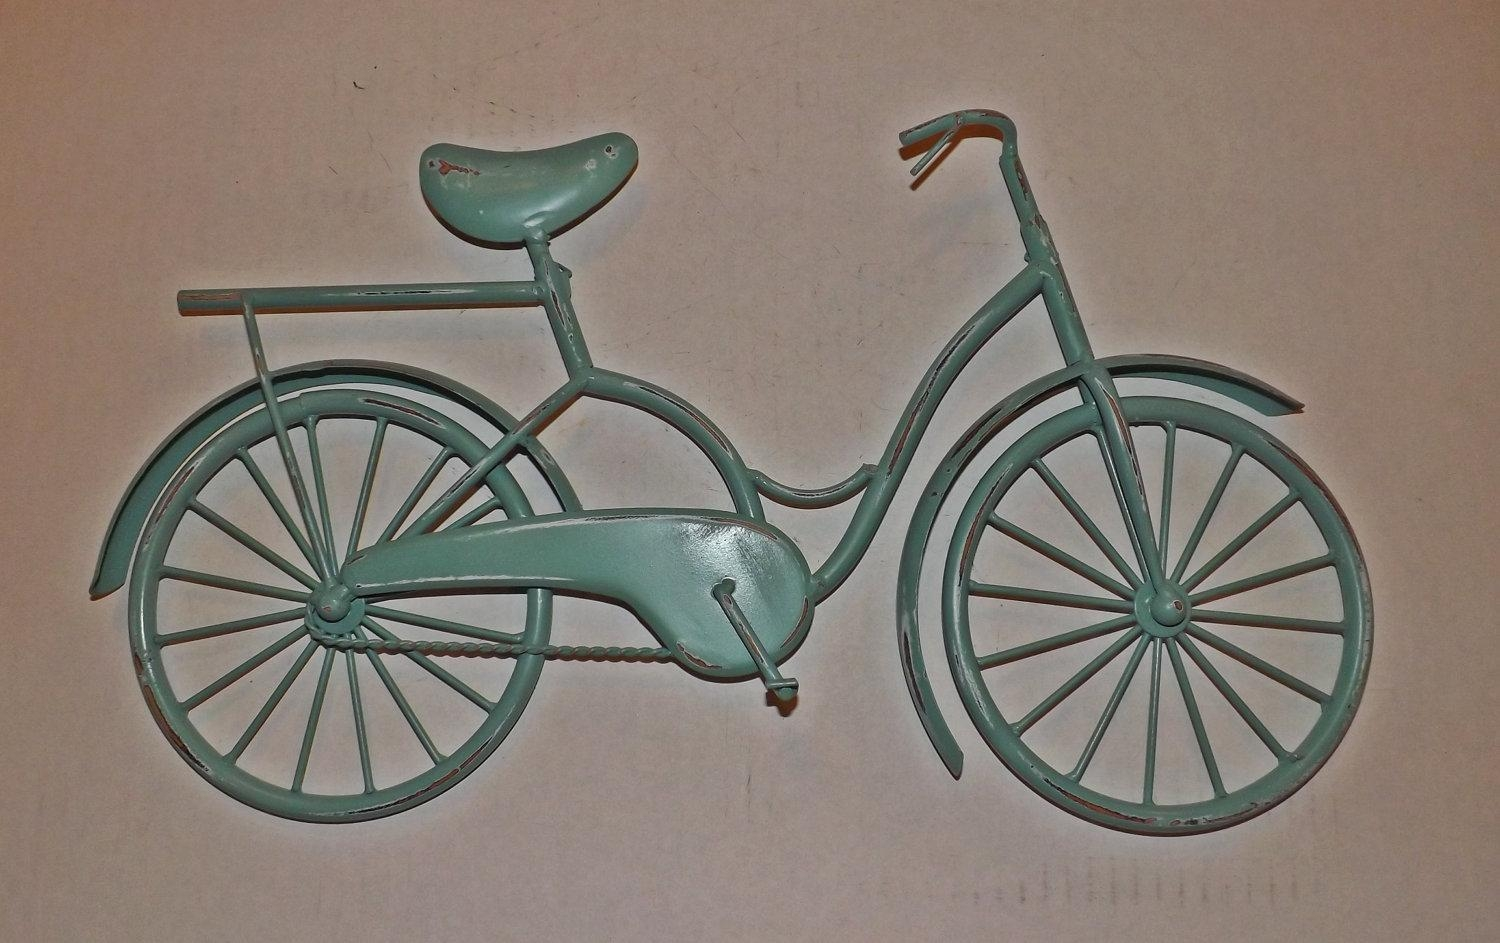 Wall Decor: Metal Bicycle Wall Art Design (View 3 of 20)